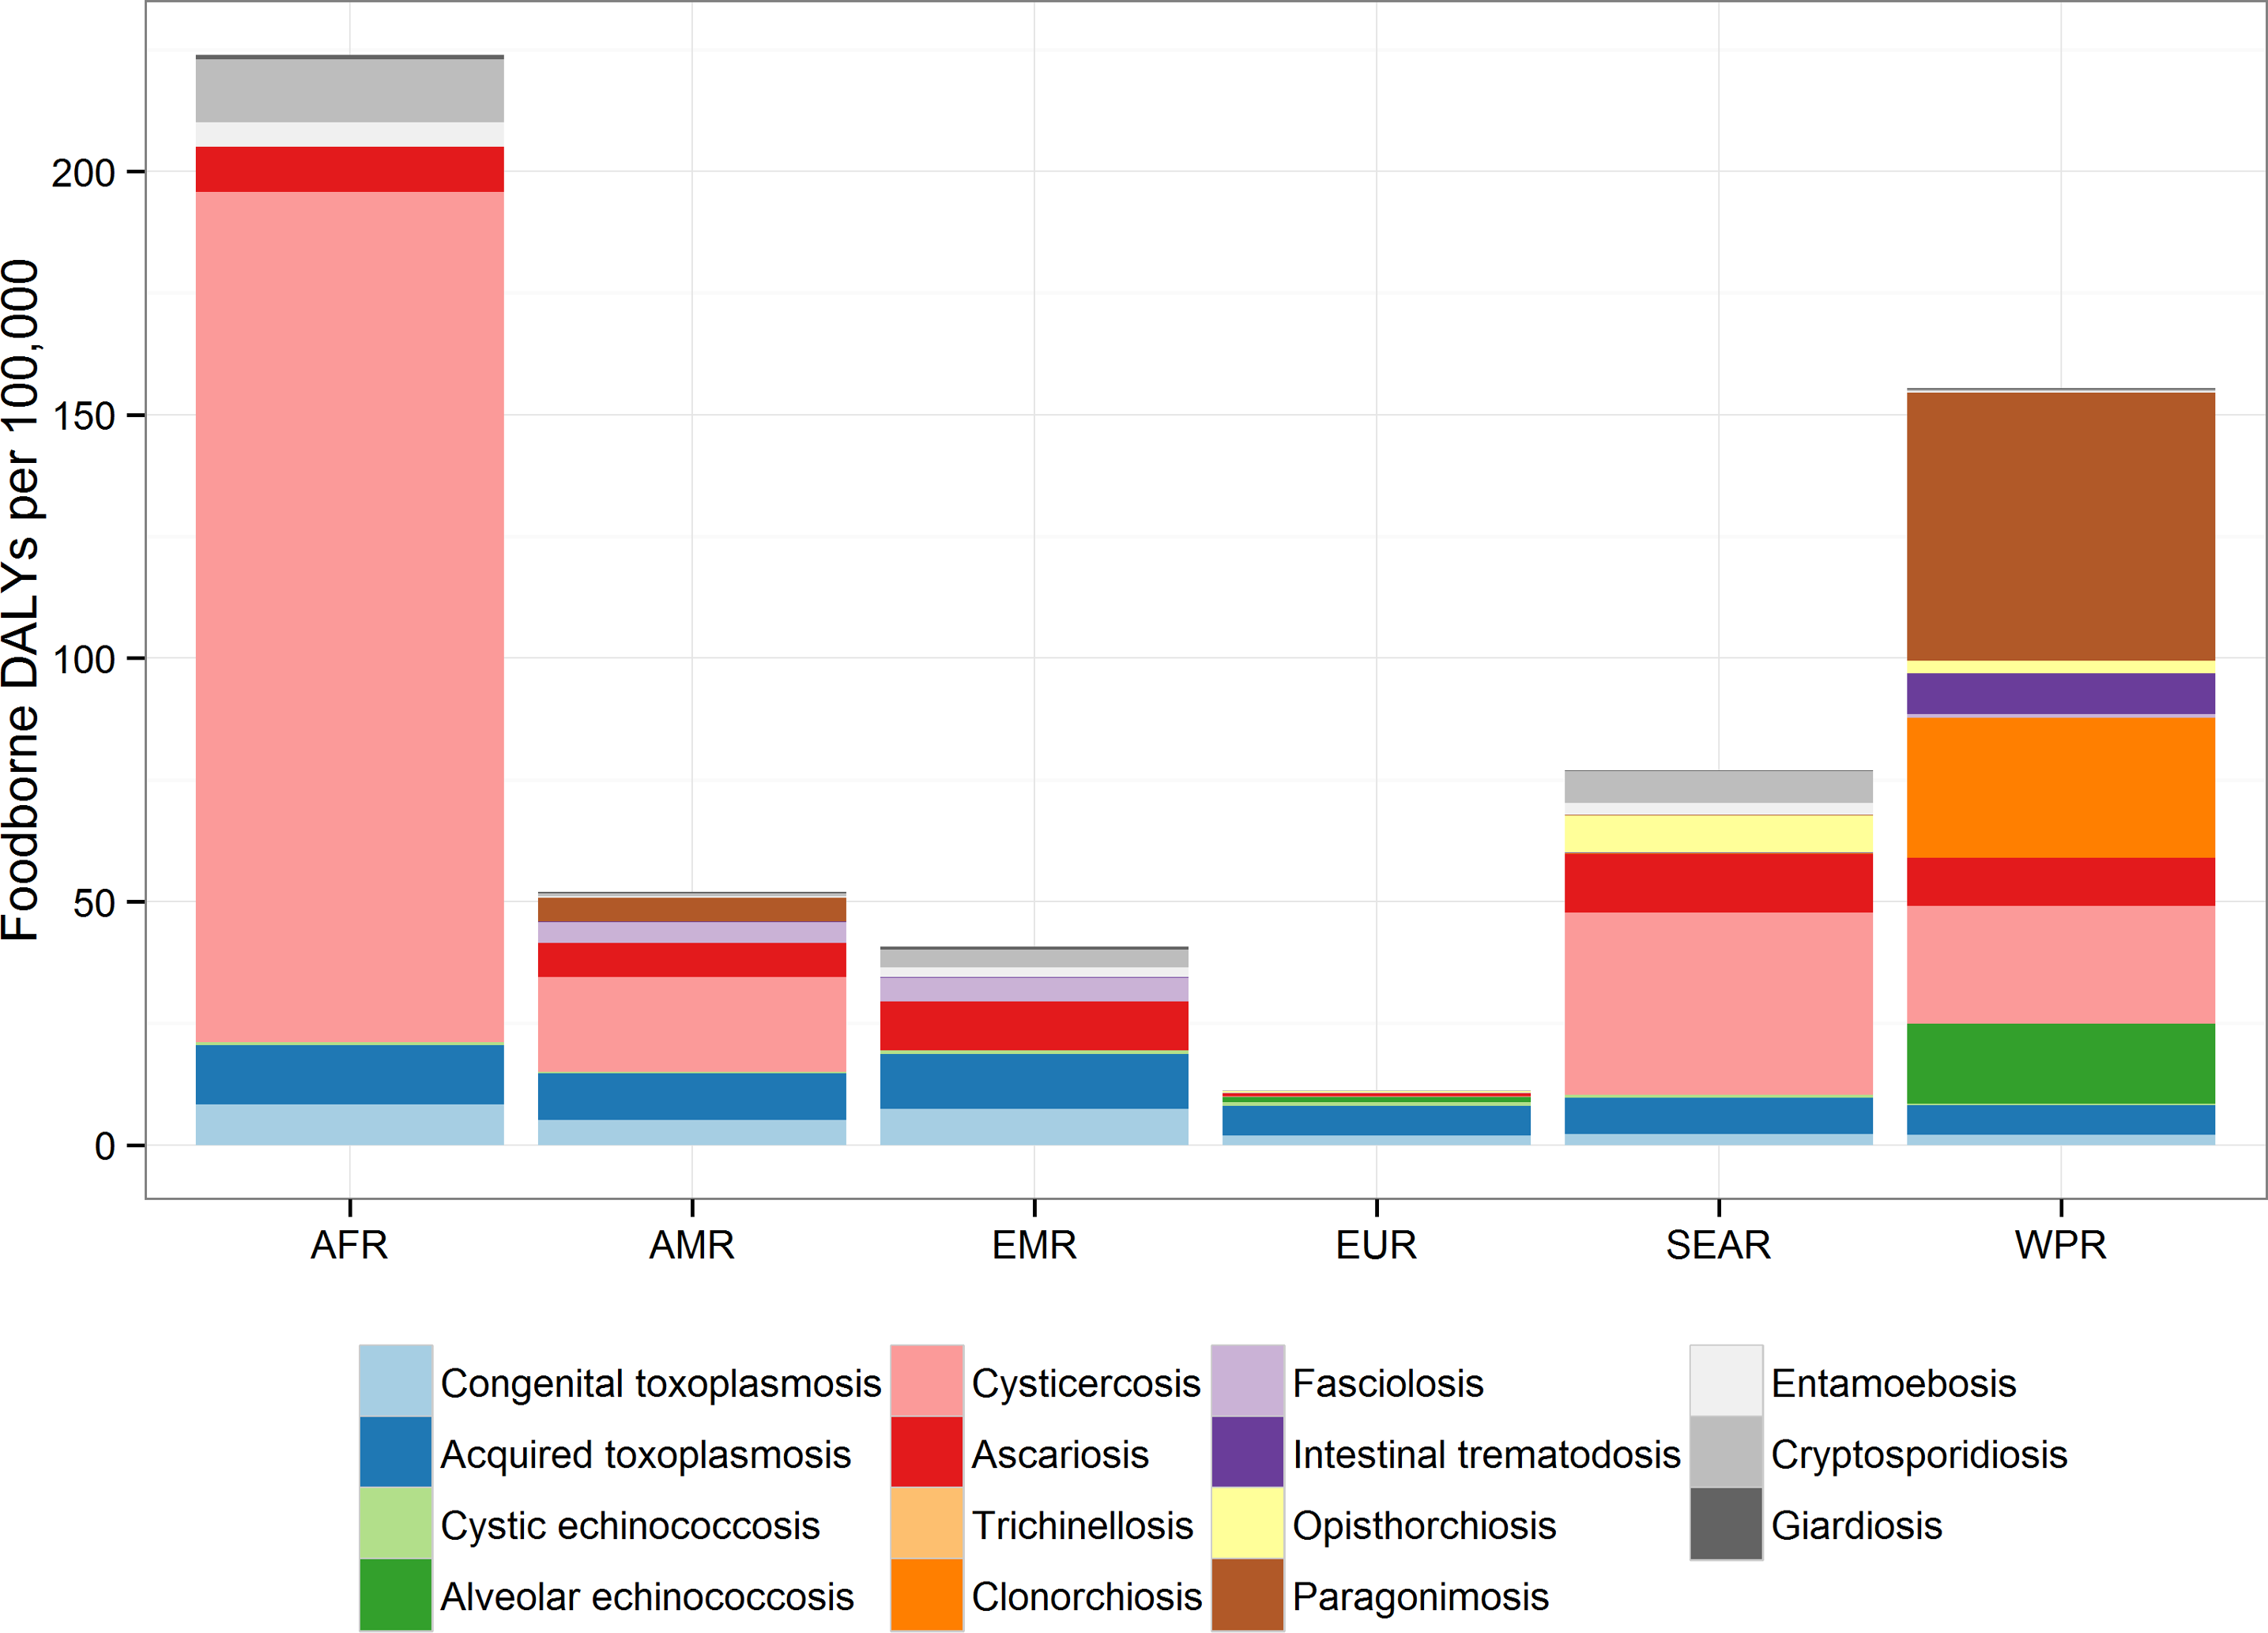 Contribution of each parasite to foodborne Disability Adjusted Life Years in regions: the relative contribution to the DALY incidence by each agent for each of the regions.